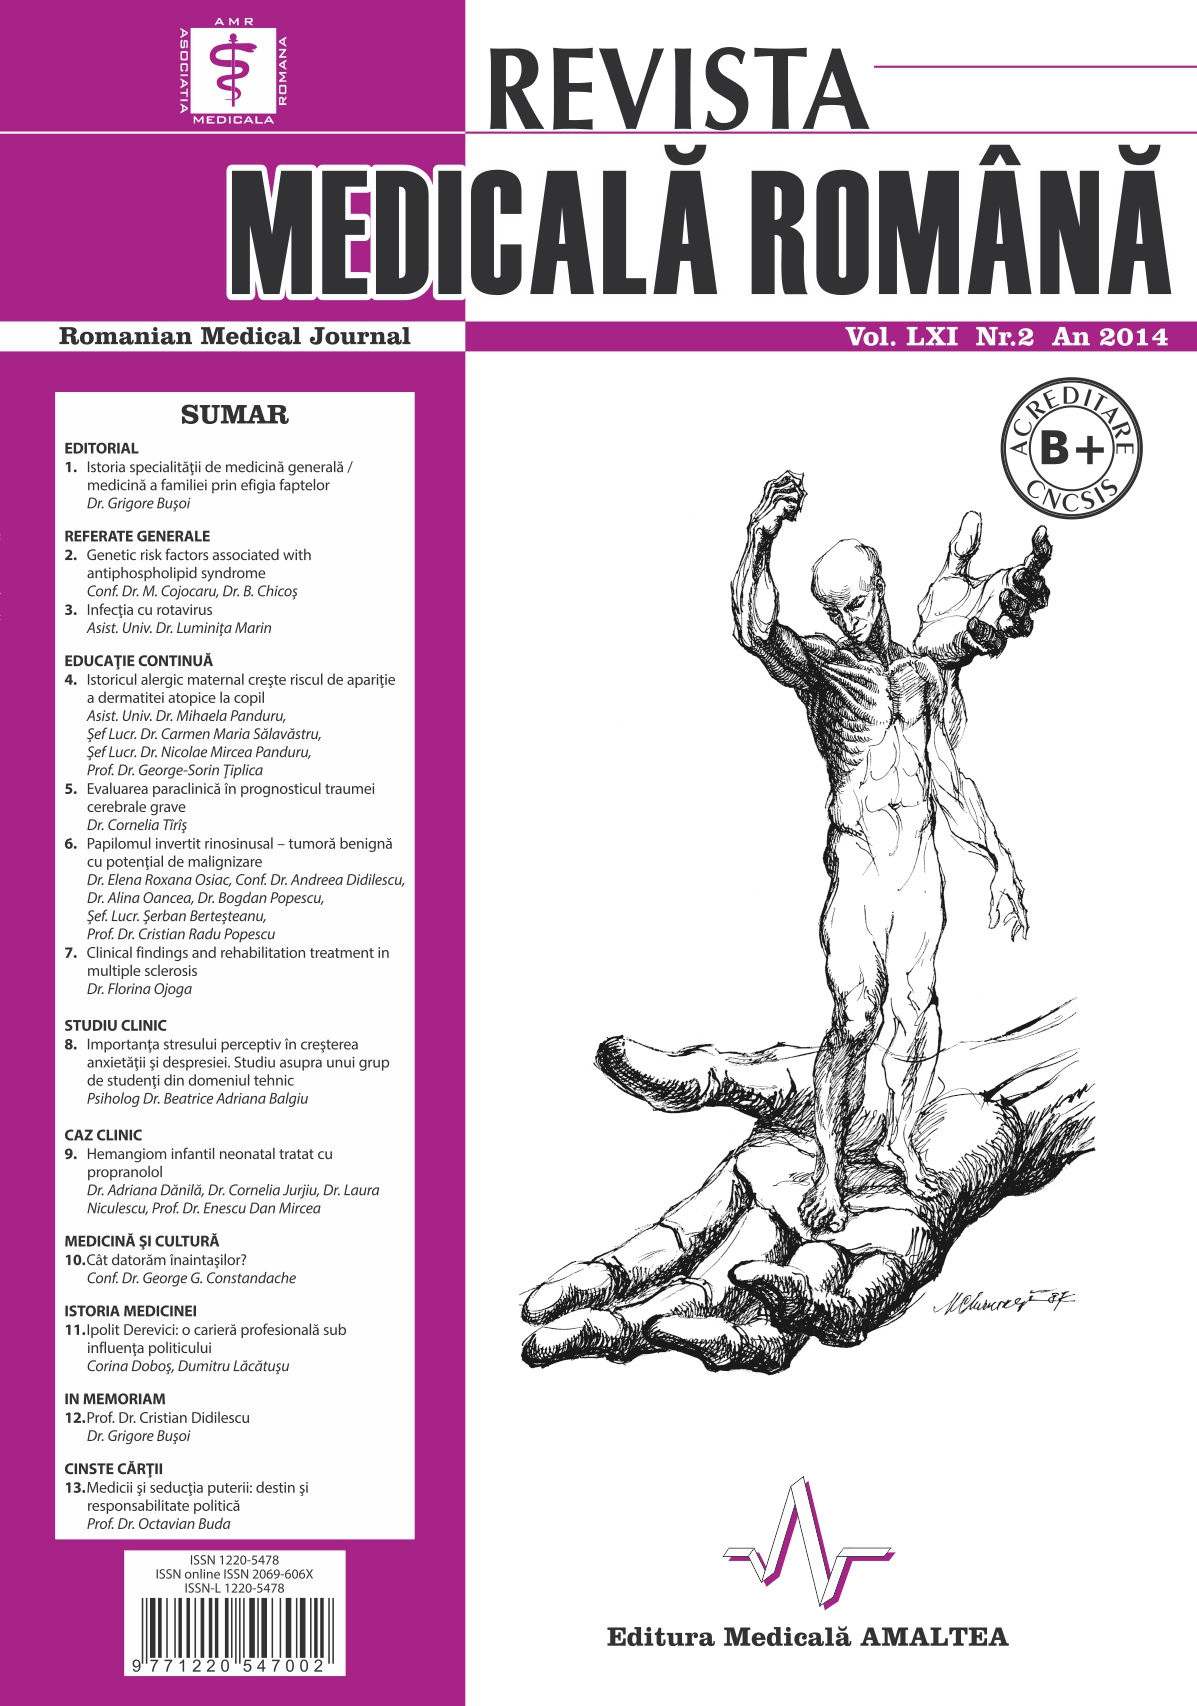 REVISTA MEDICALA ROMANA - Romanian Medical Journal, Vol. LXI, No. 2, Year 2014